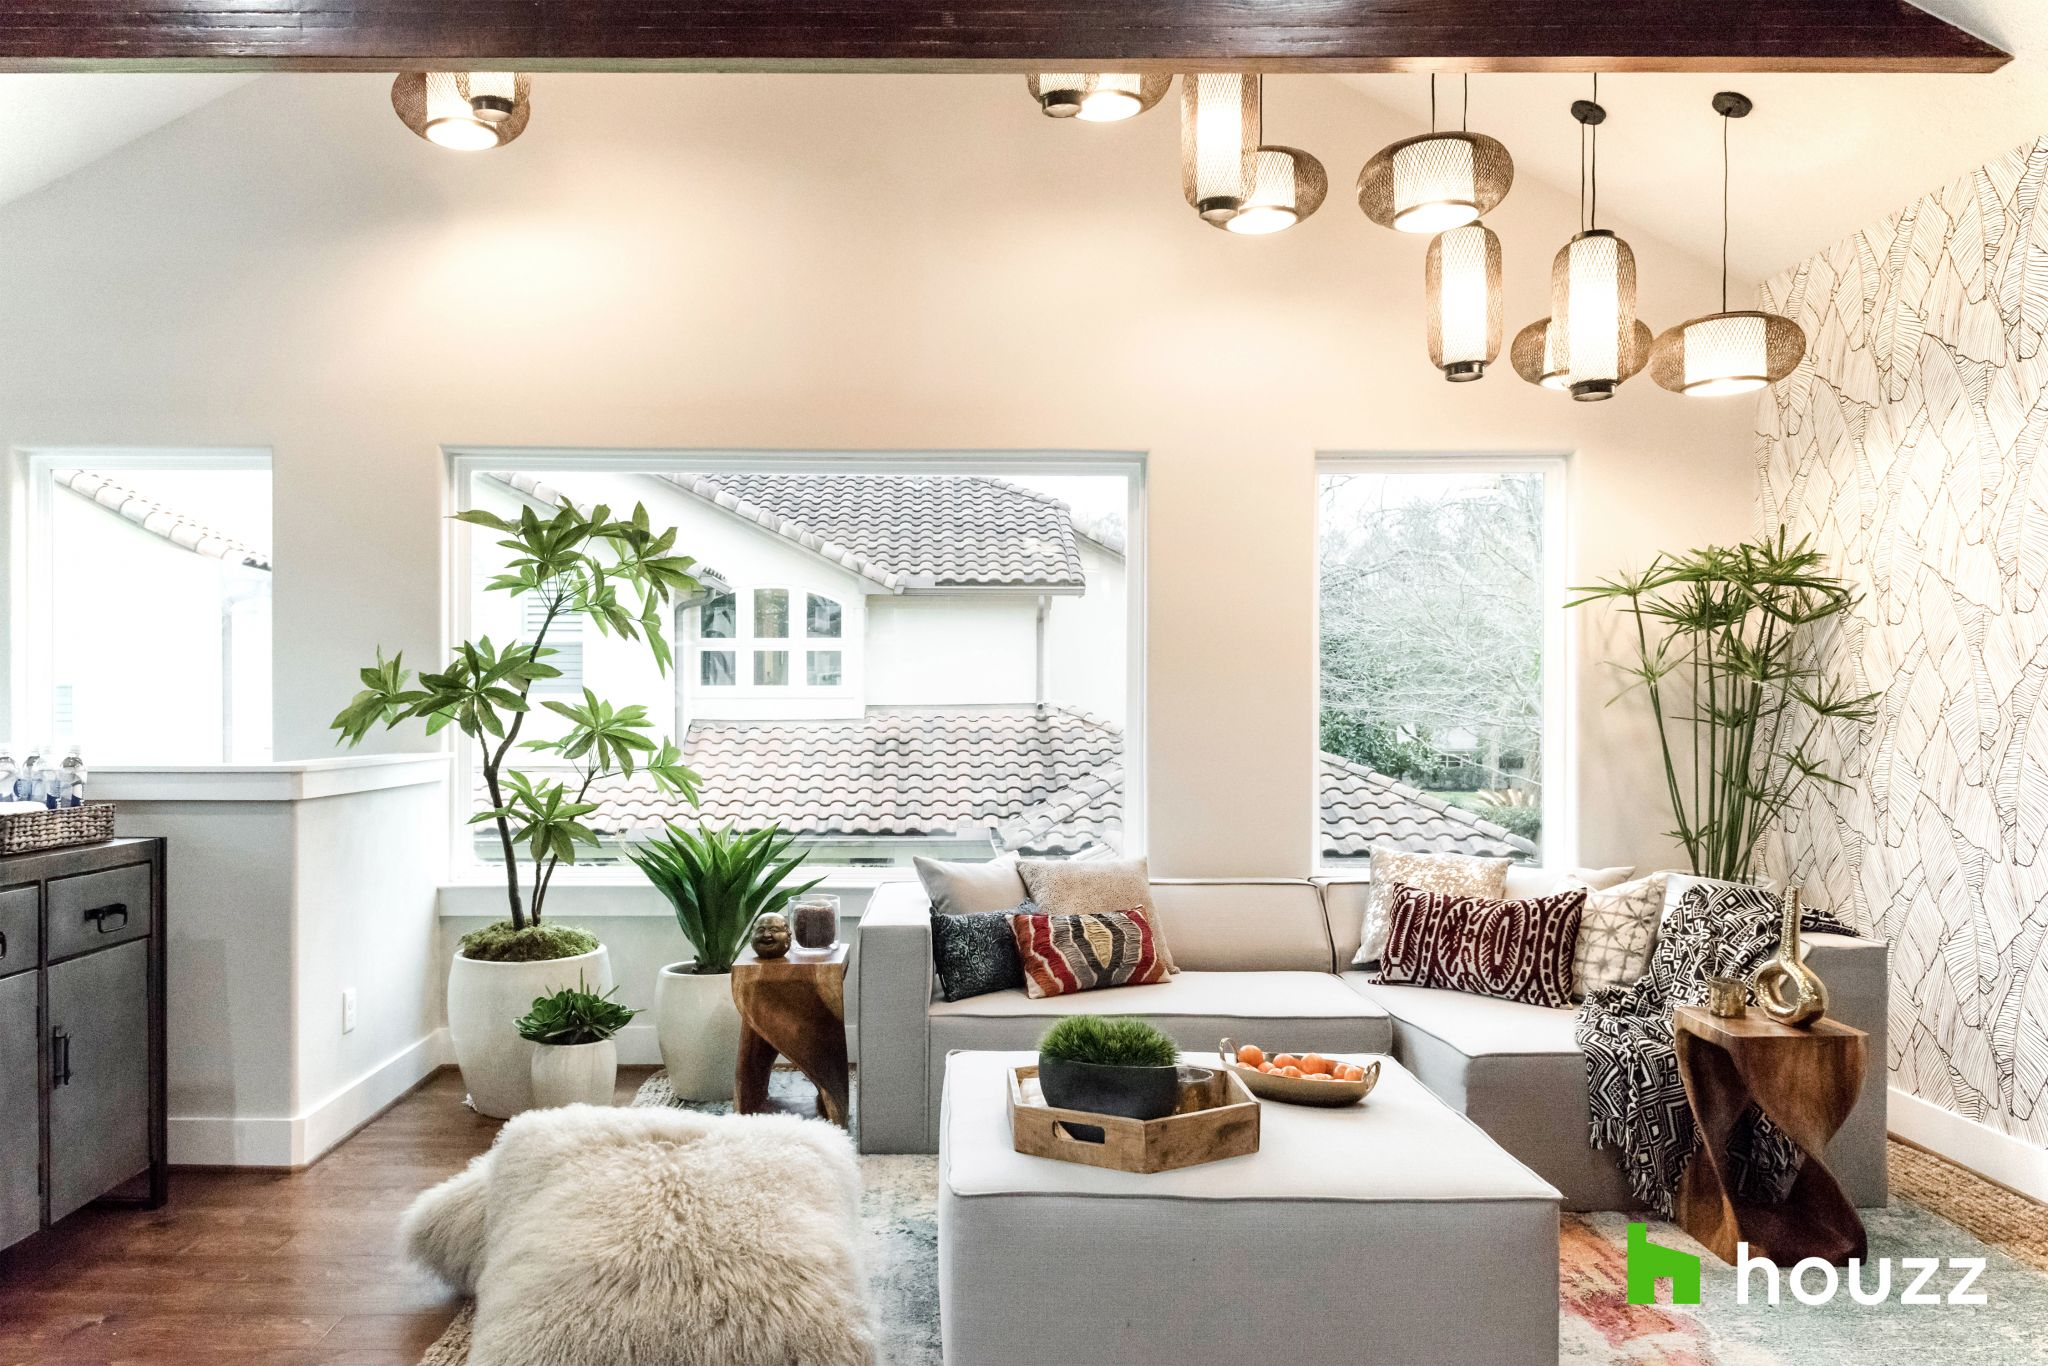 Mario Lopez Surprises His Houston Sister With A Home Addition